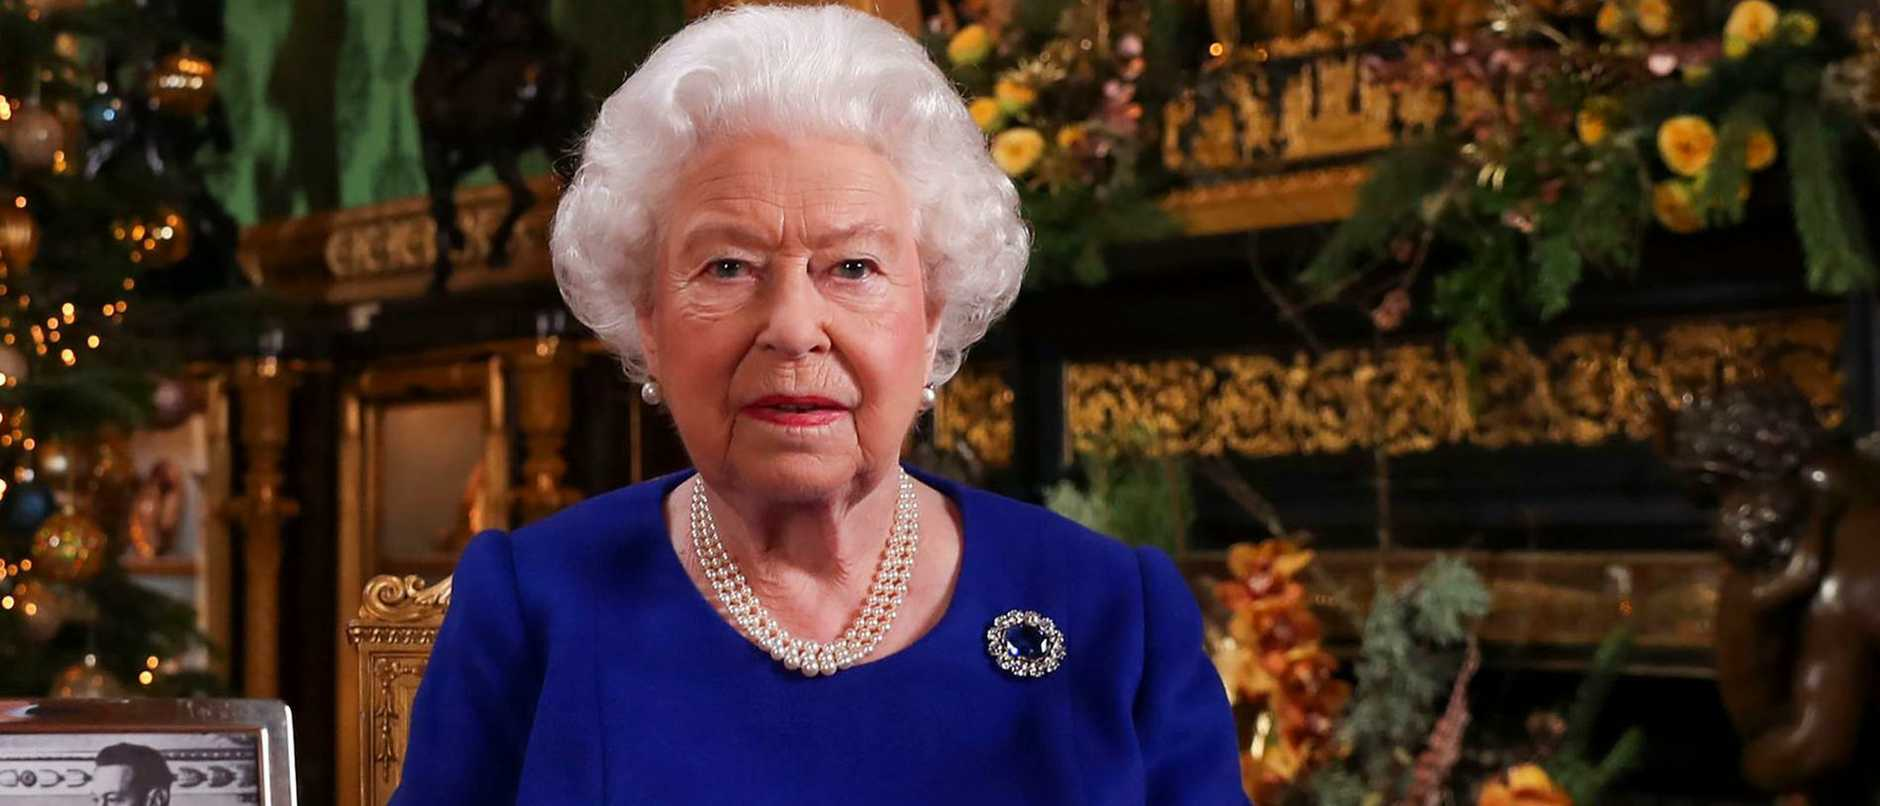 Queen Elizabeth will address the Commonwealth over the virus crisis, making it her first such address since the deaths of the Queen Mother and Princess Diana.